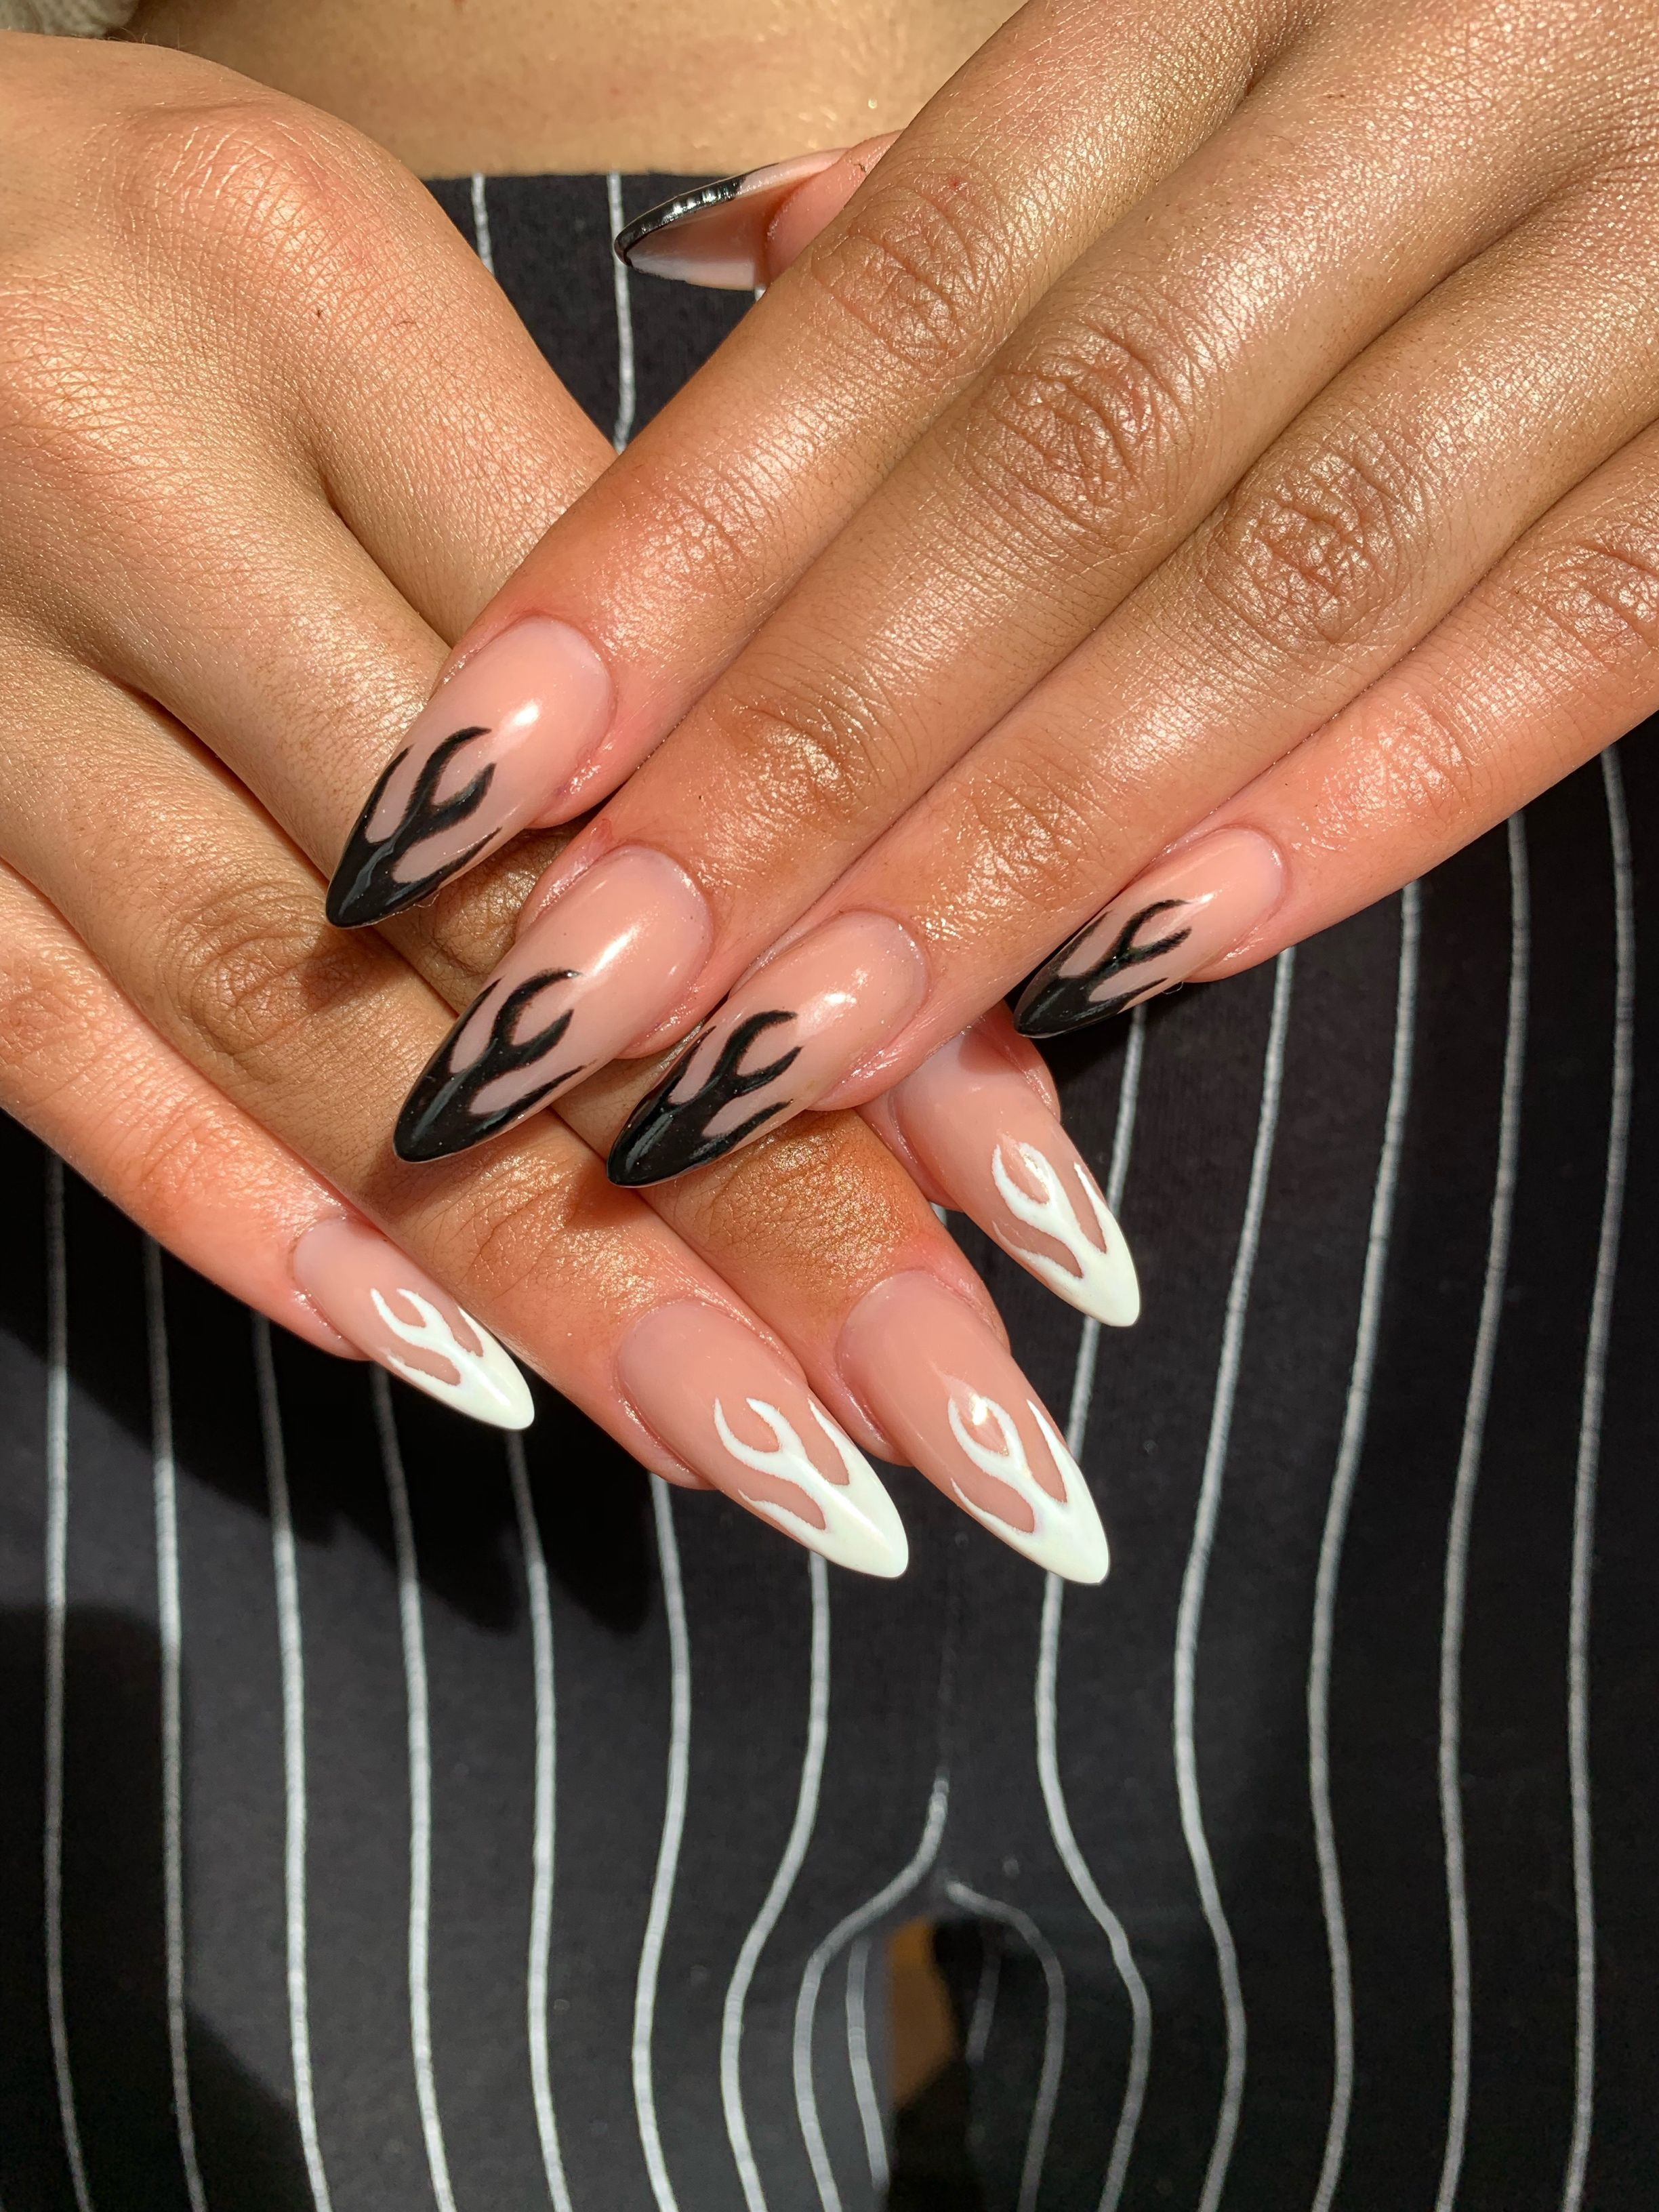 Pin By Julie On Nails In 2020 Gelove Nehty Nehty